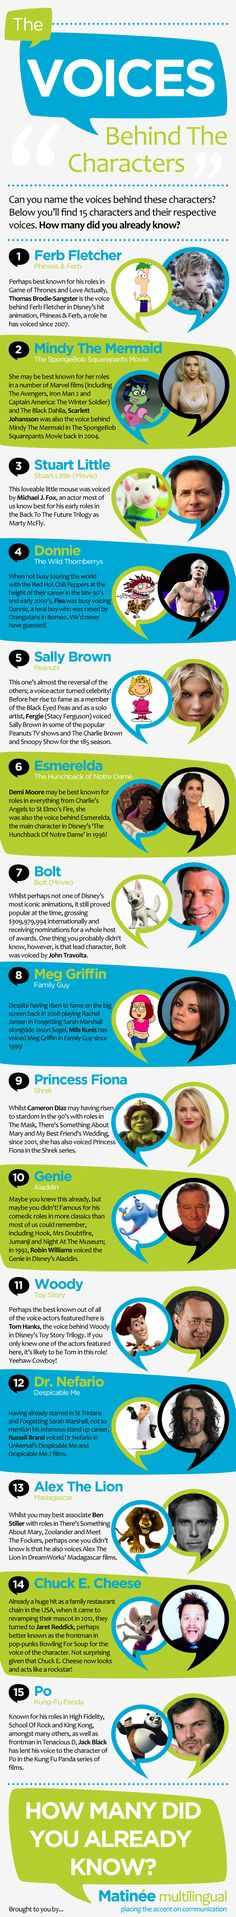 The Voices Behind The Characters #infographic #Movies #Entertainment